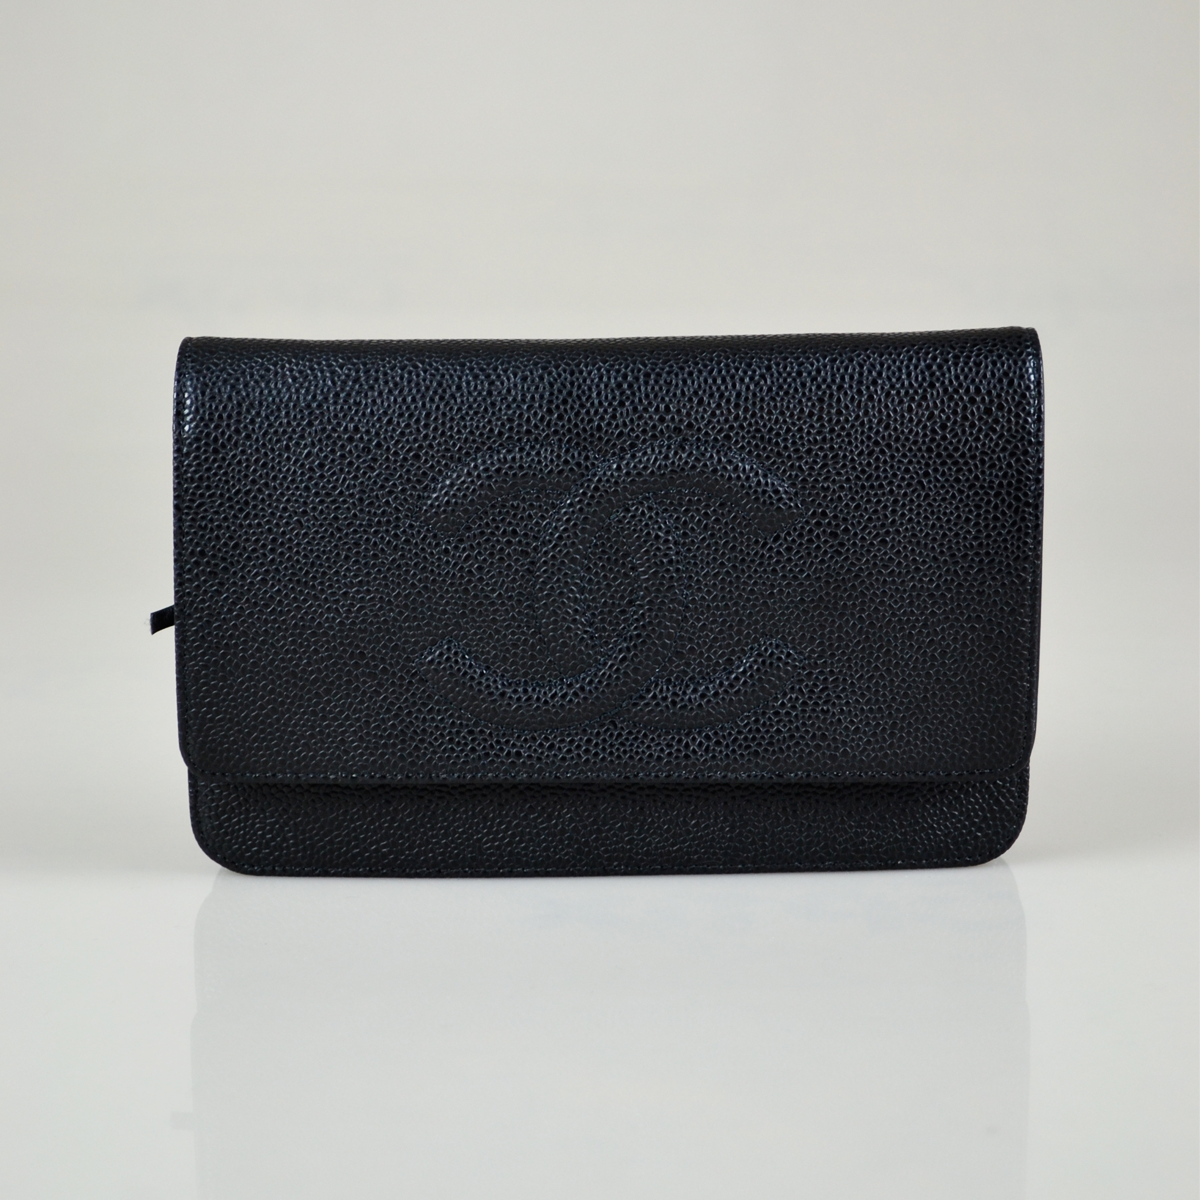 aaae44ae1090 Chanel Black Caviar Leather Timeless CC Wallet On A Chain (WOC ...